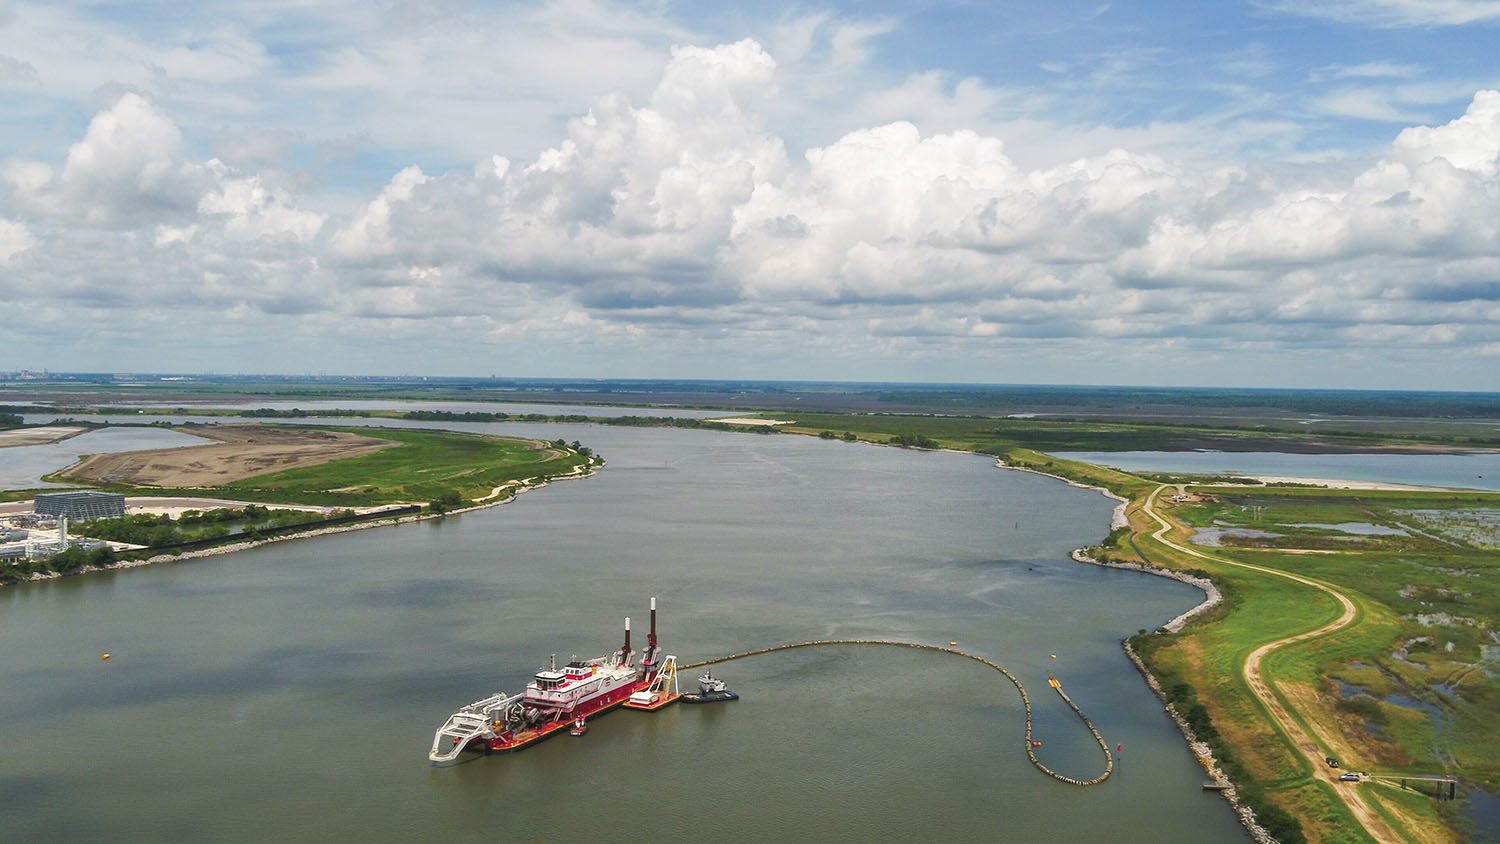 The Dredge Chatry of Weeks Marine is shown deepening the inner harbor of the Savannah River May 28 as part of the Savannah Harbor Expansion Project. (Photo courtesy of Georgia Ports Authority)